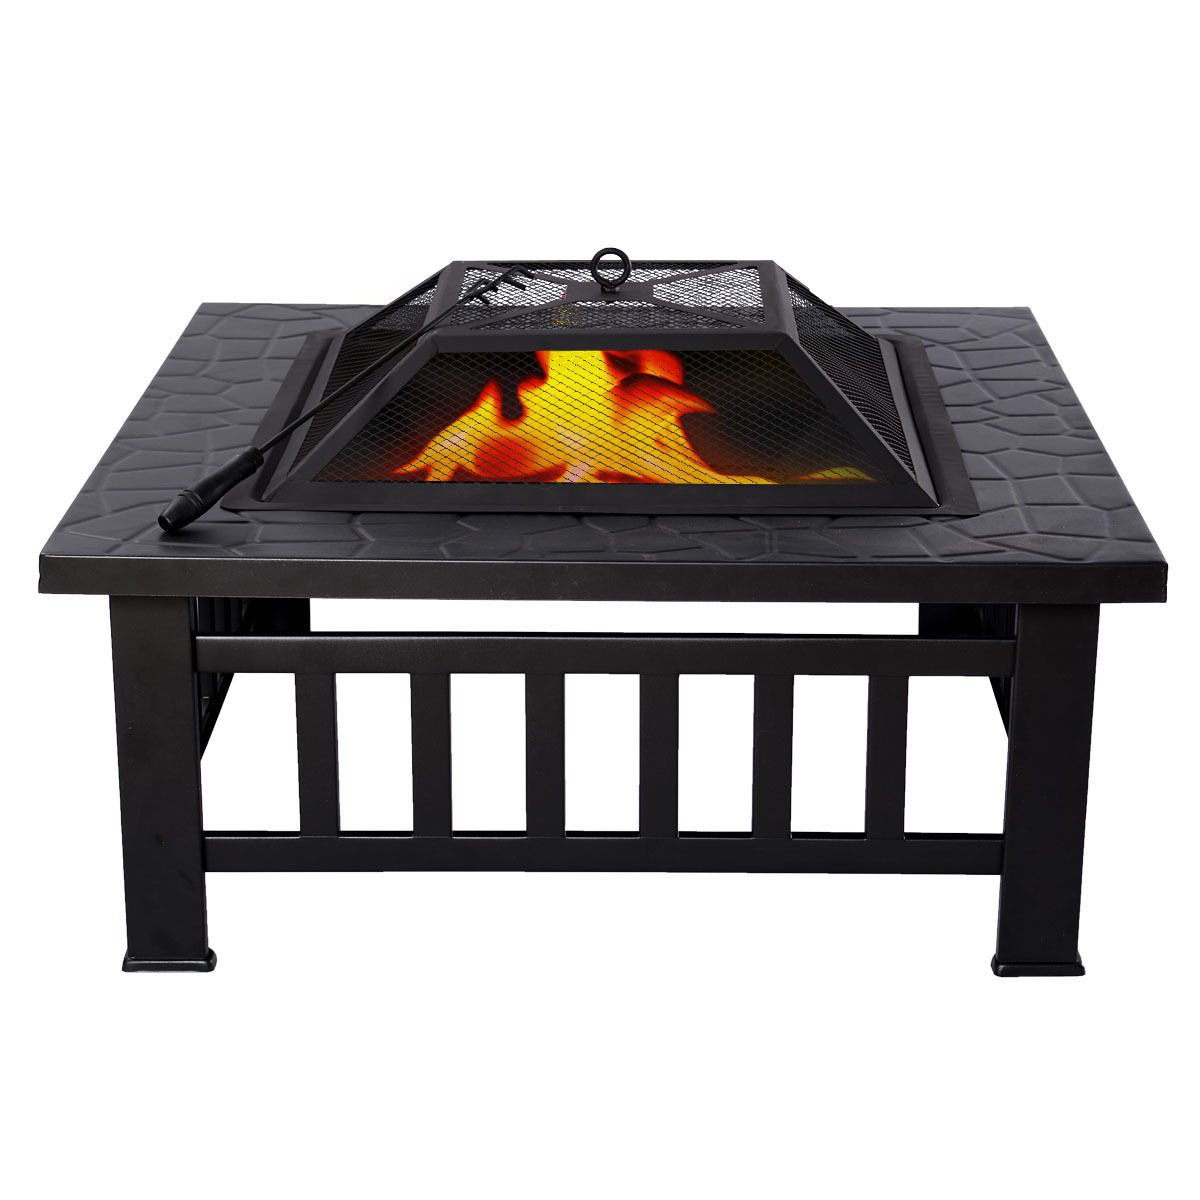 Outdoor Metal Firepit Patio Garden Square Stove Brazier 32 Inch